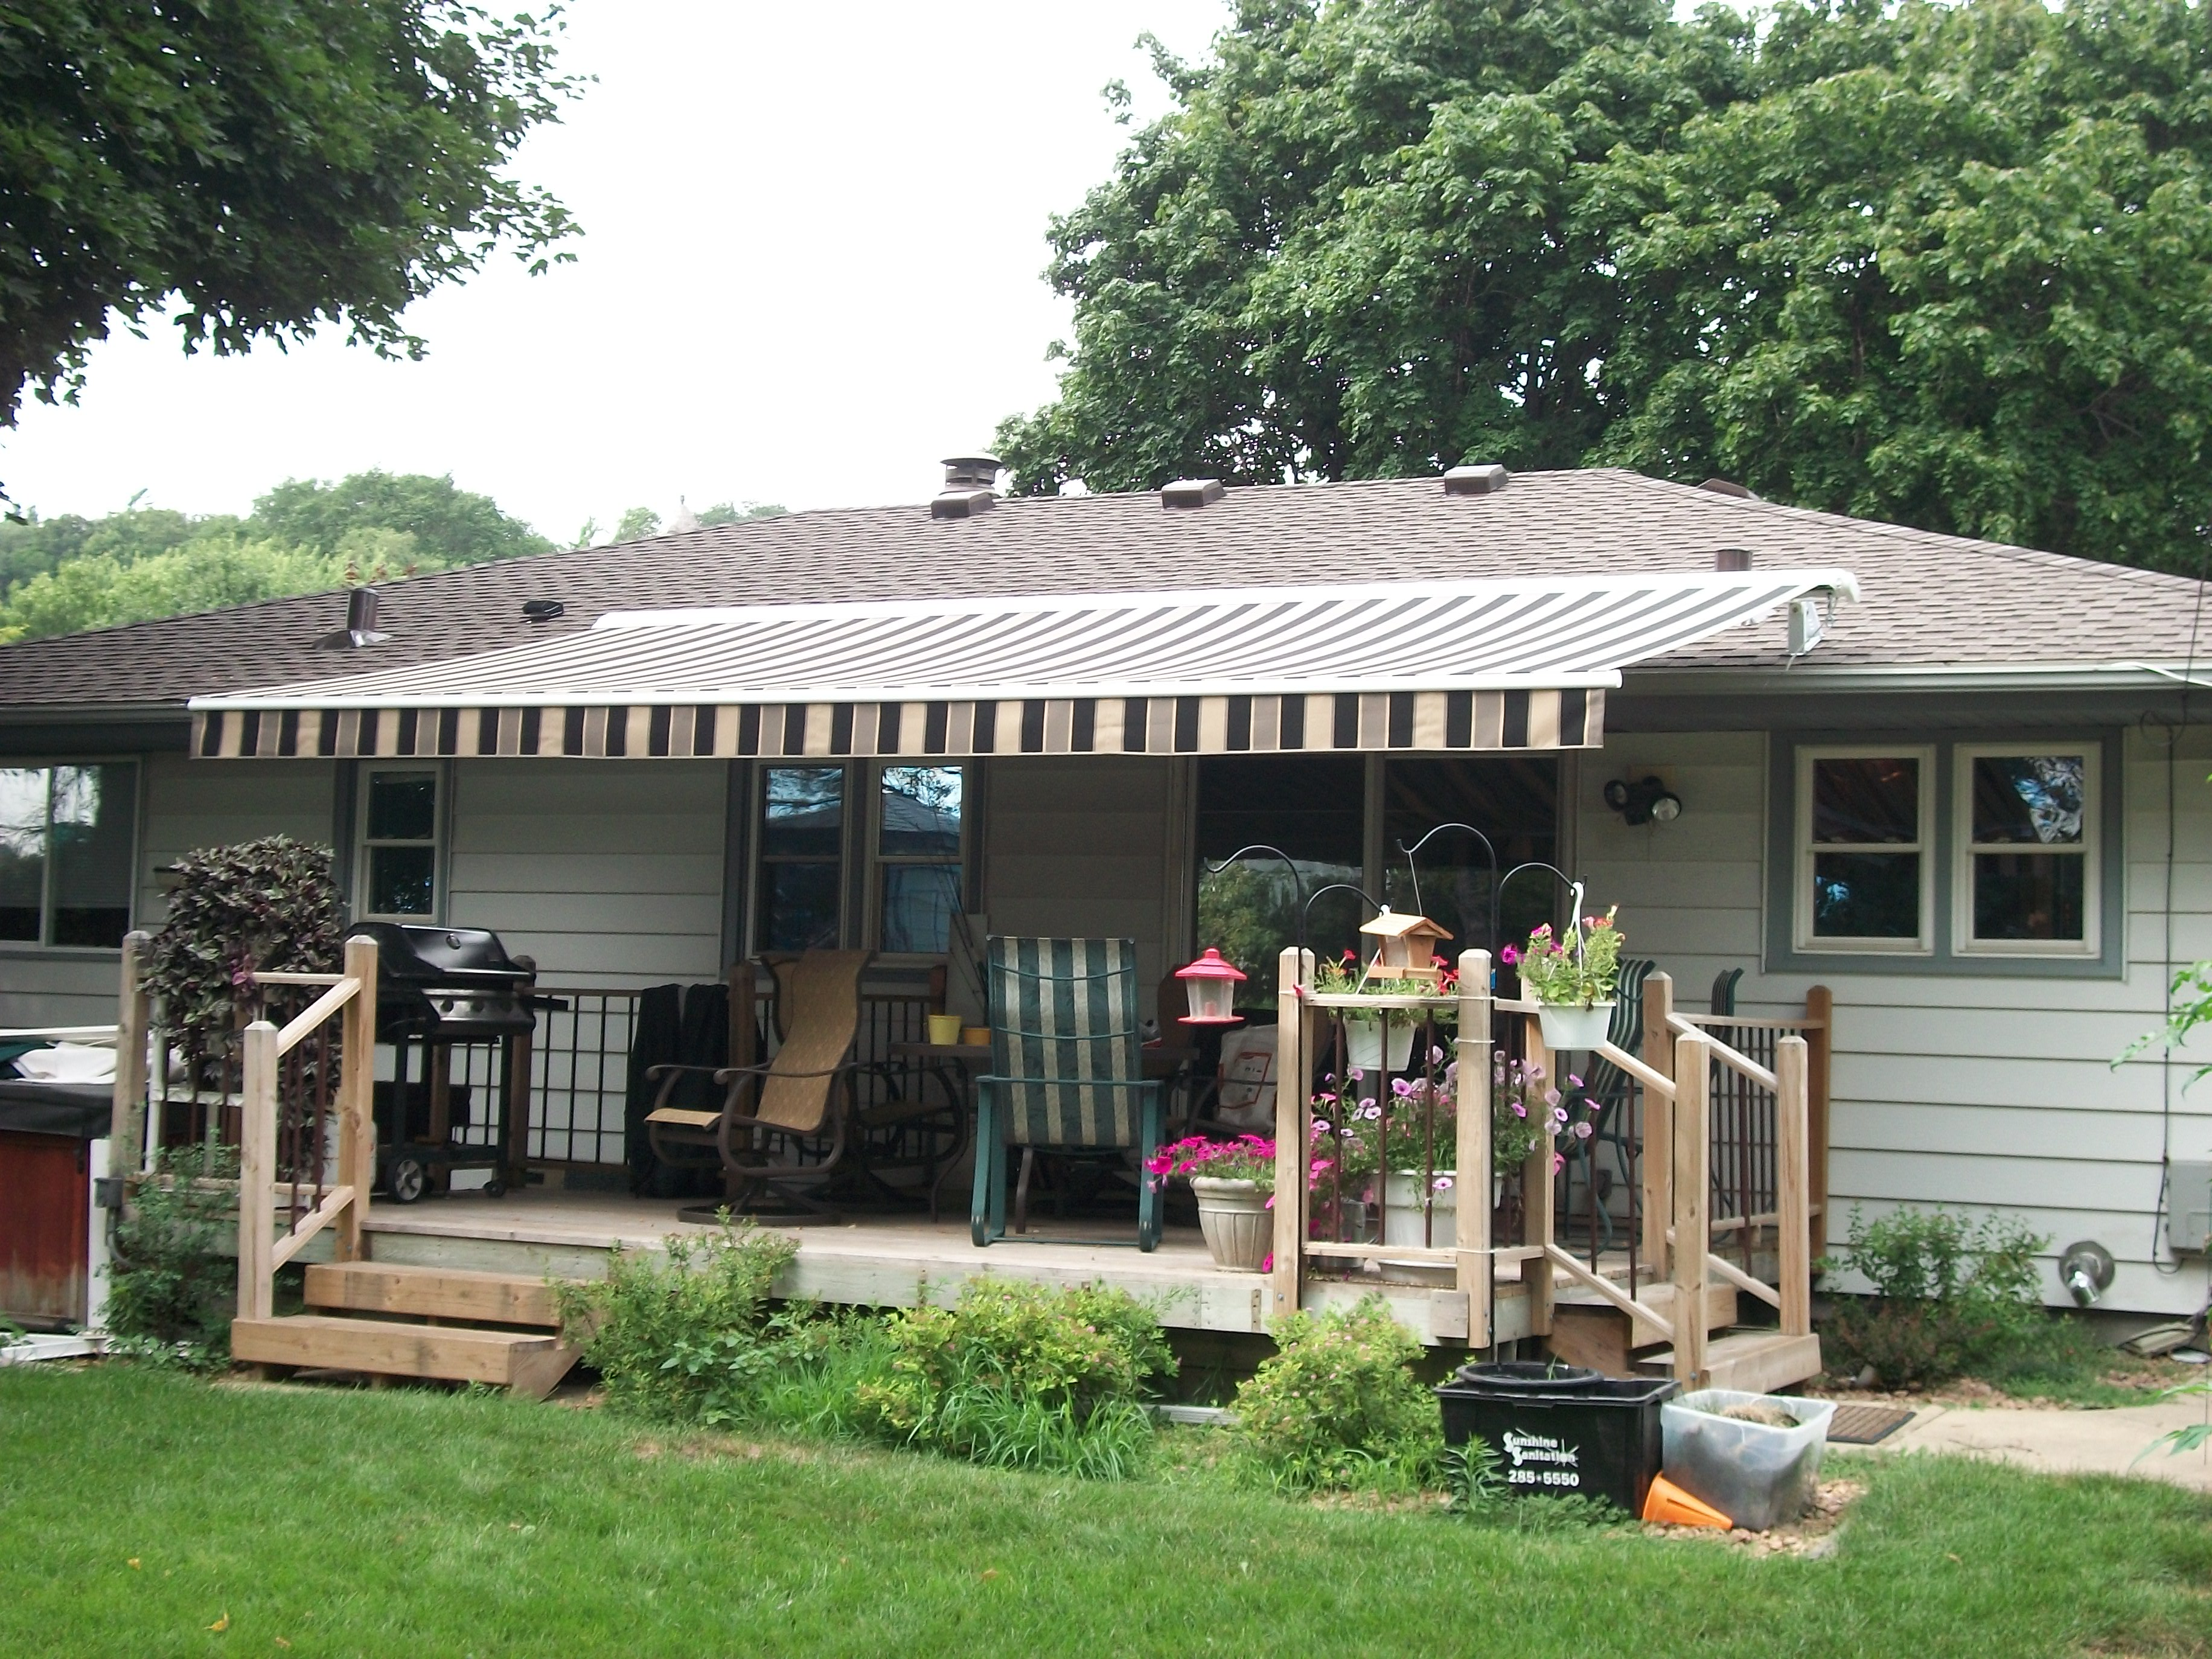 nh awning got ve for sunesta awningsnh salem installation we you retractable motor covered